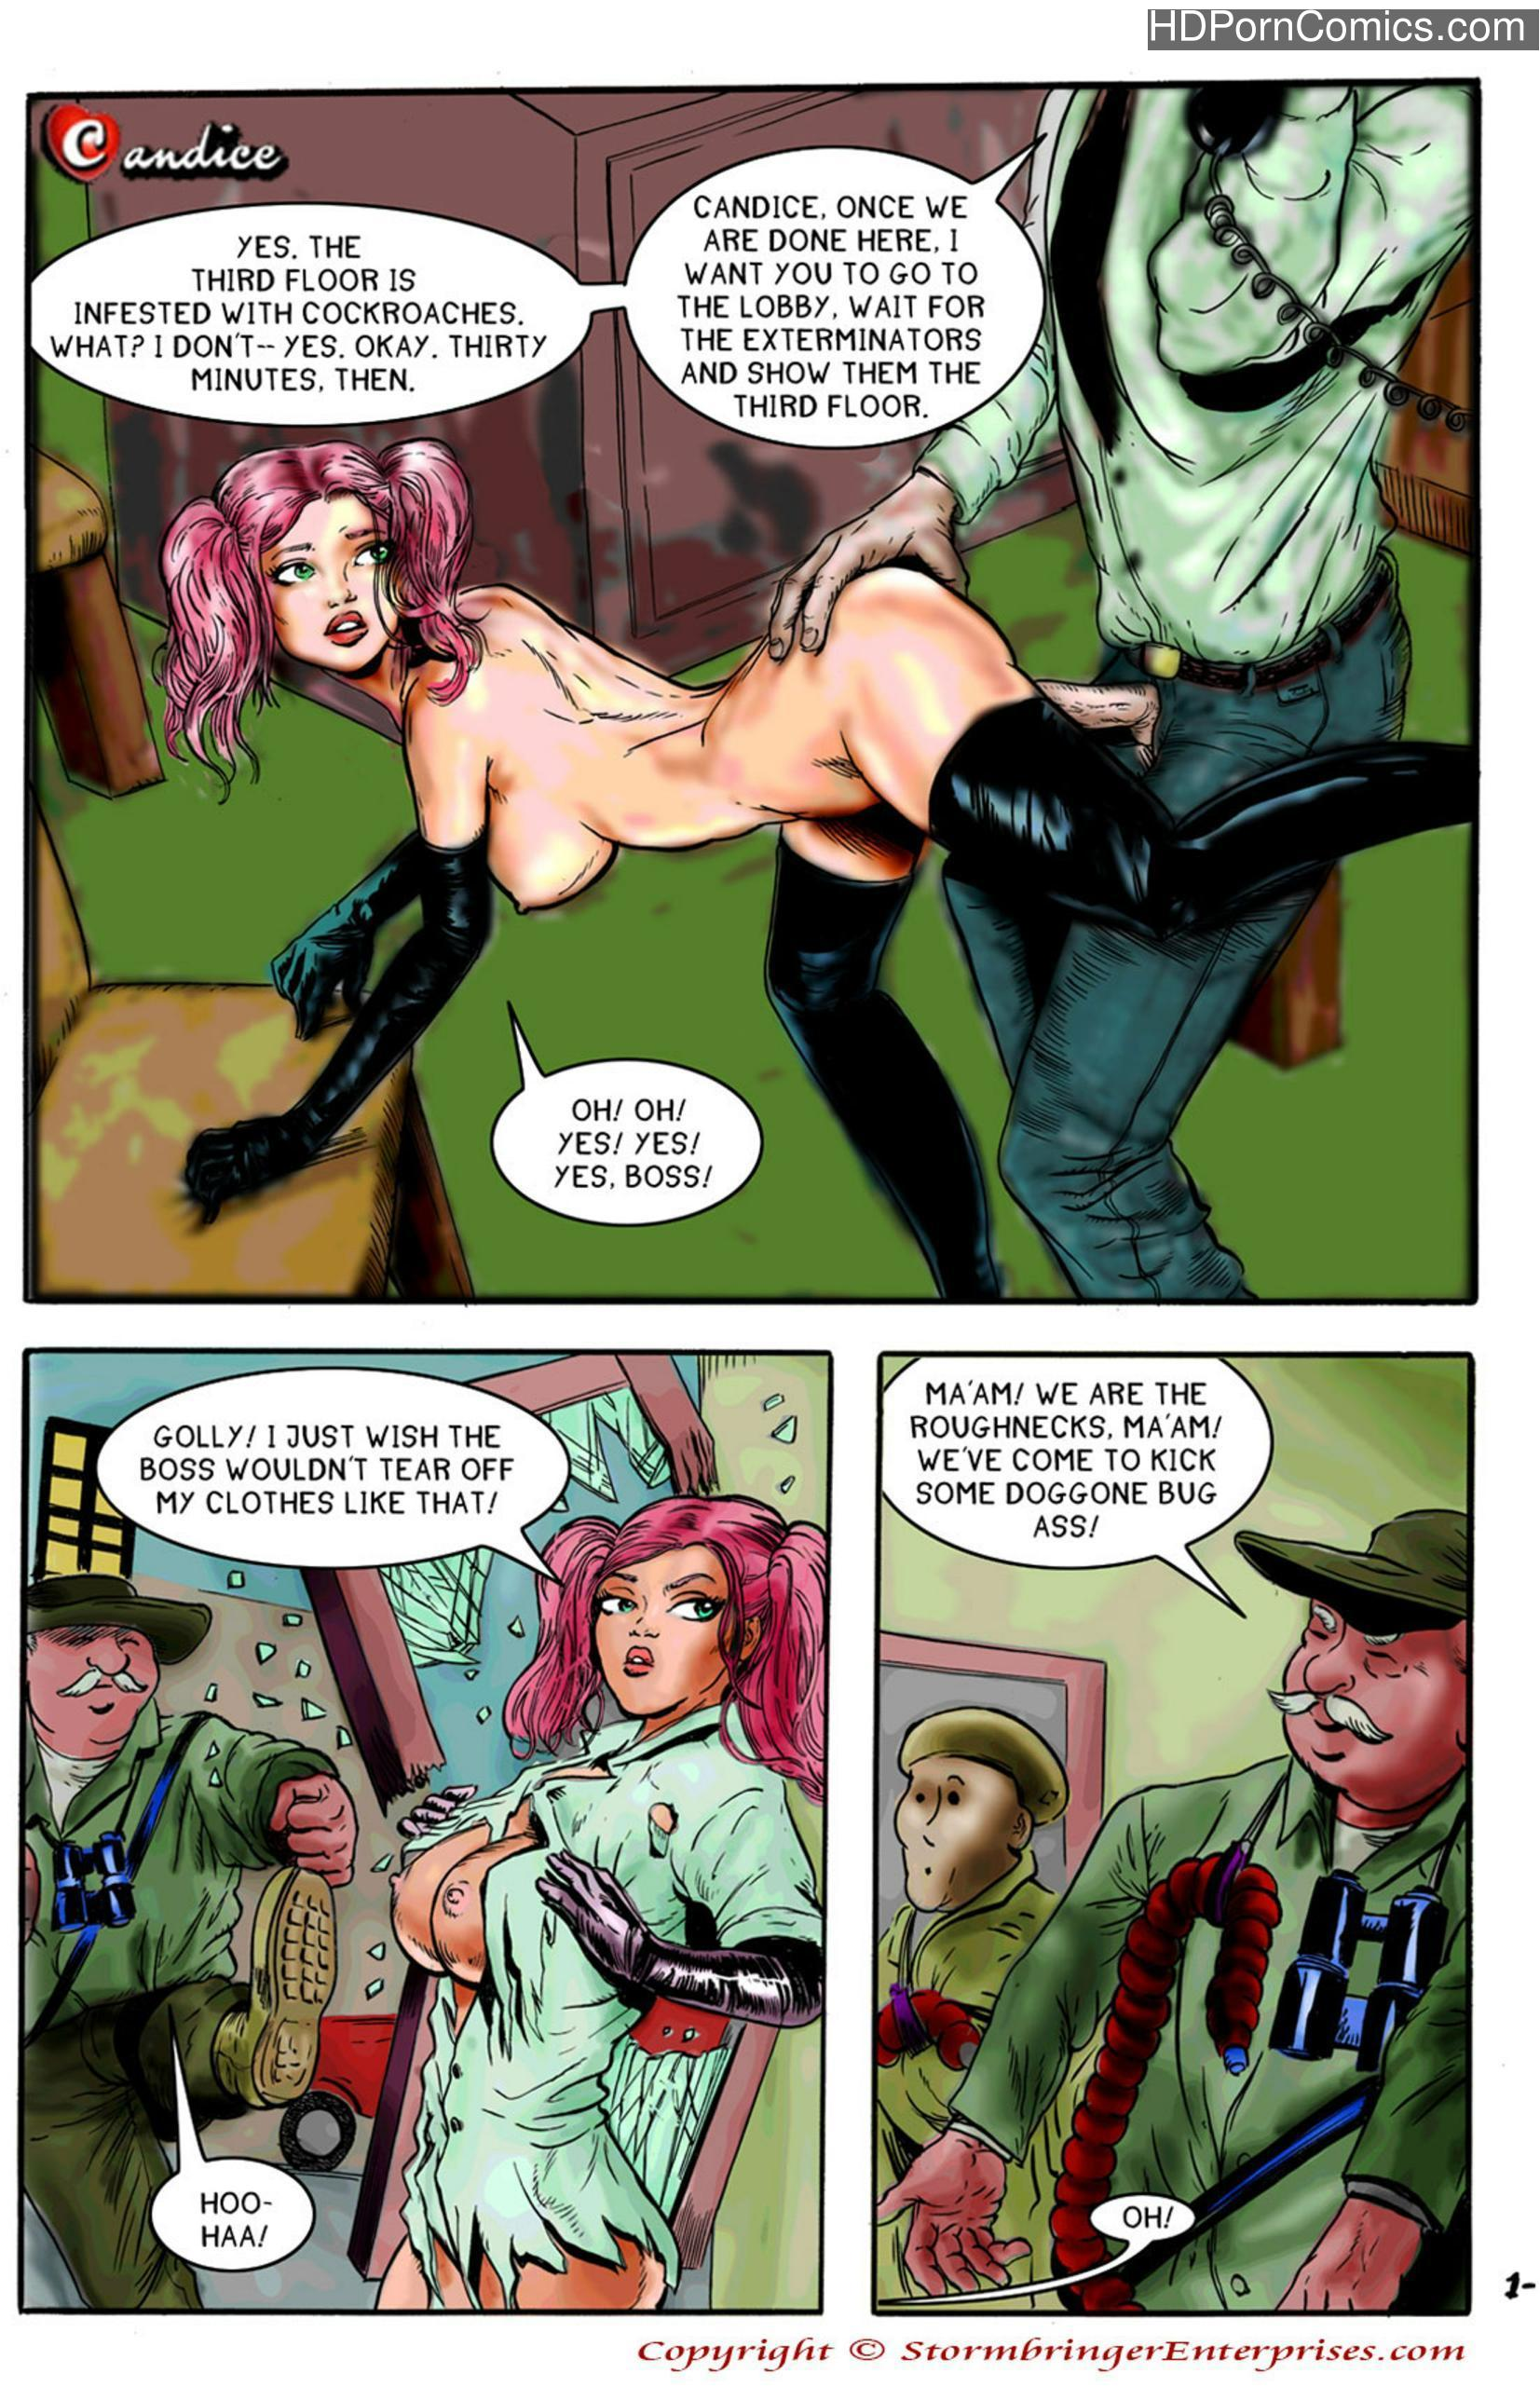 Erotic Adventures of Candice 01-181 free sex comic